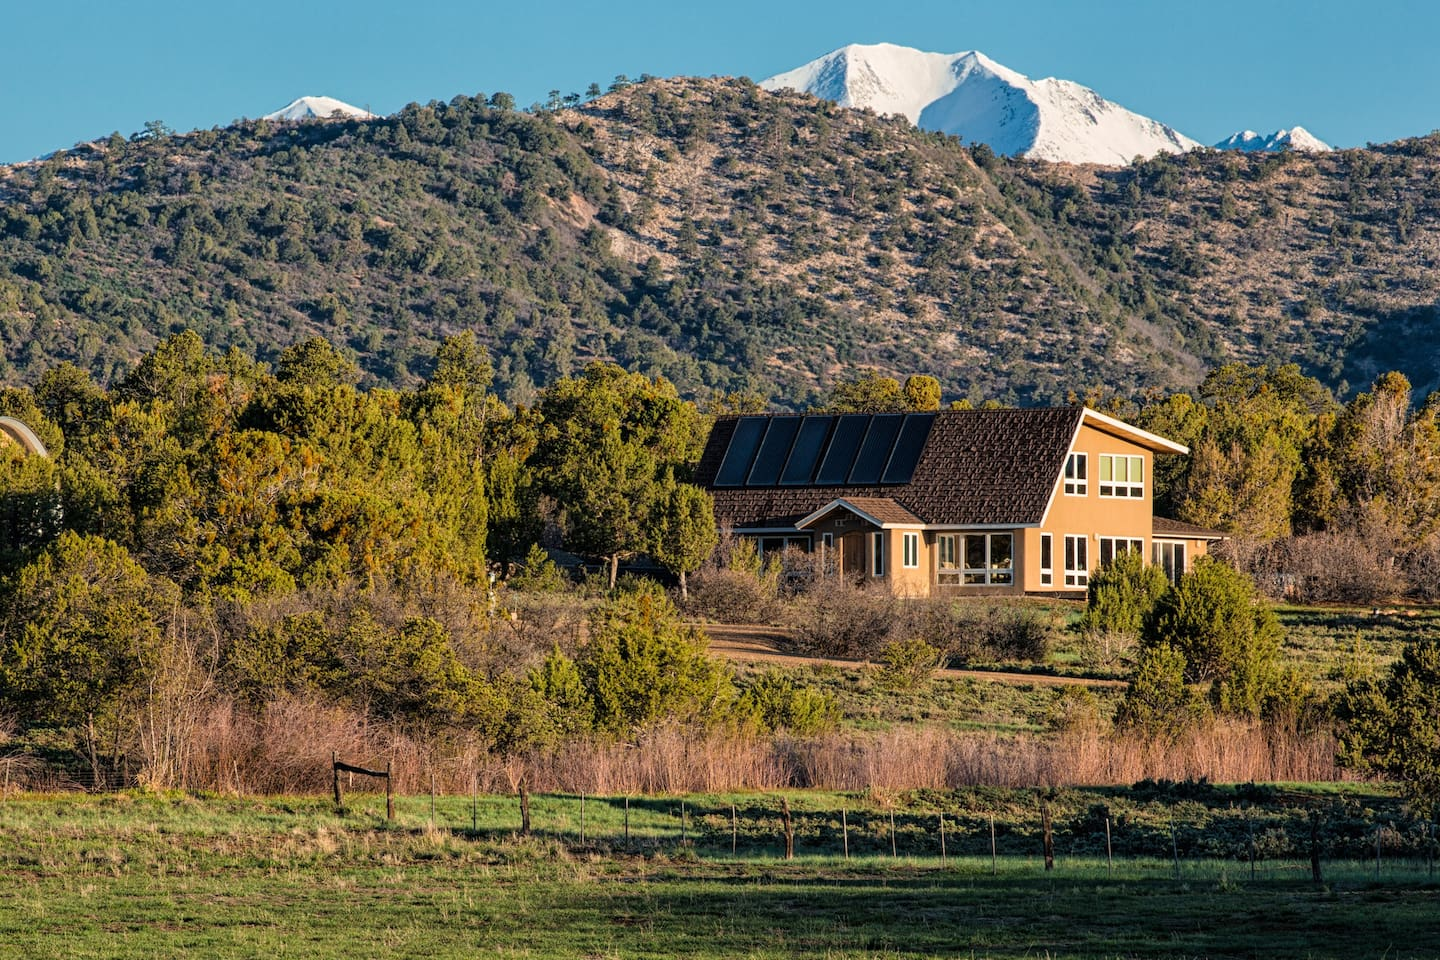 We welcome you to stay with us in our modern solar home nestled in the Colorado countryside just 9 miles from downtown Durango, towards the La Plata County airport